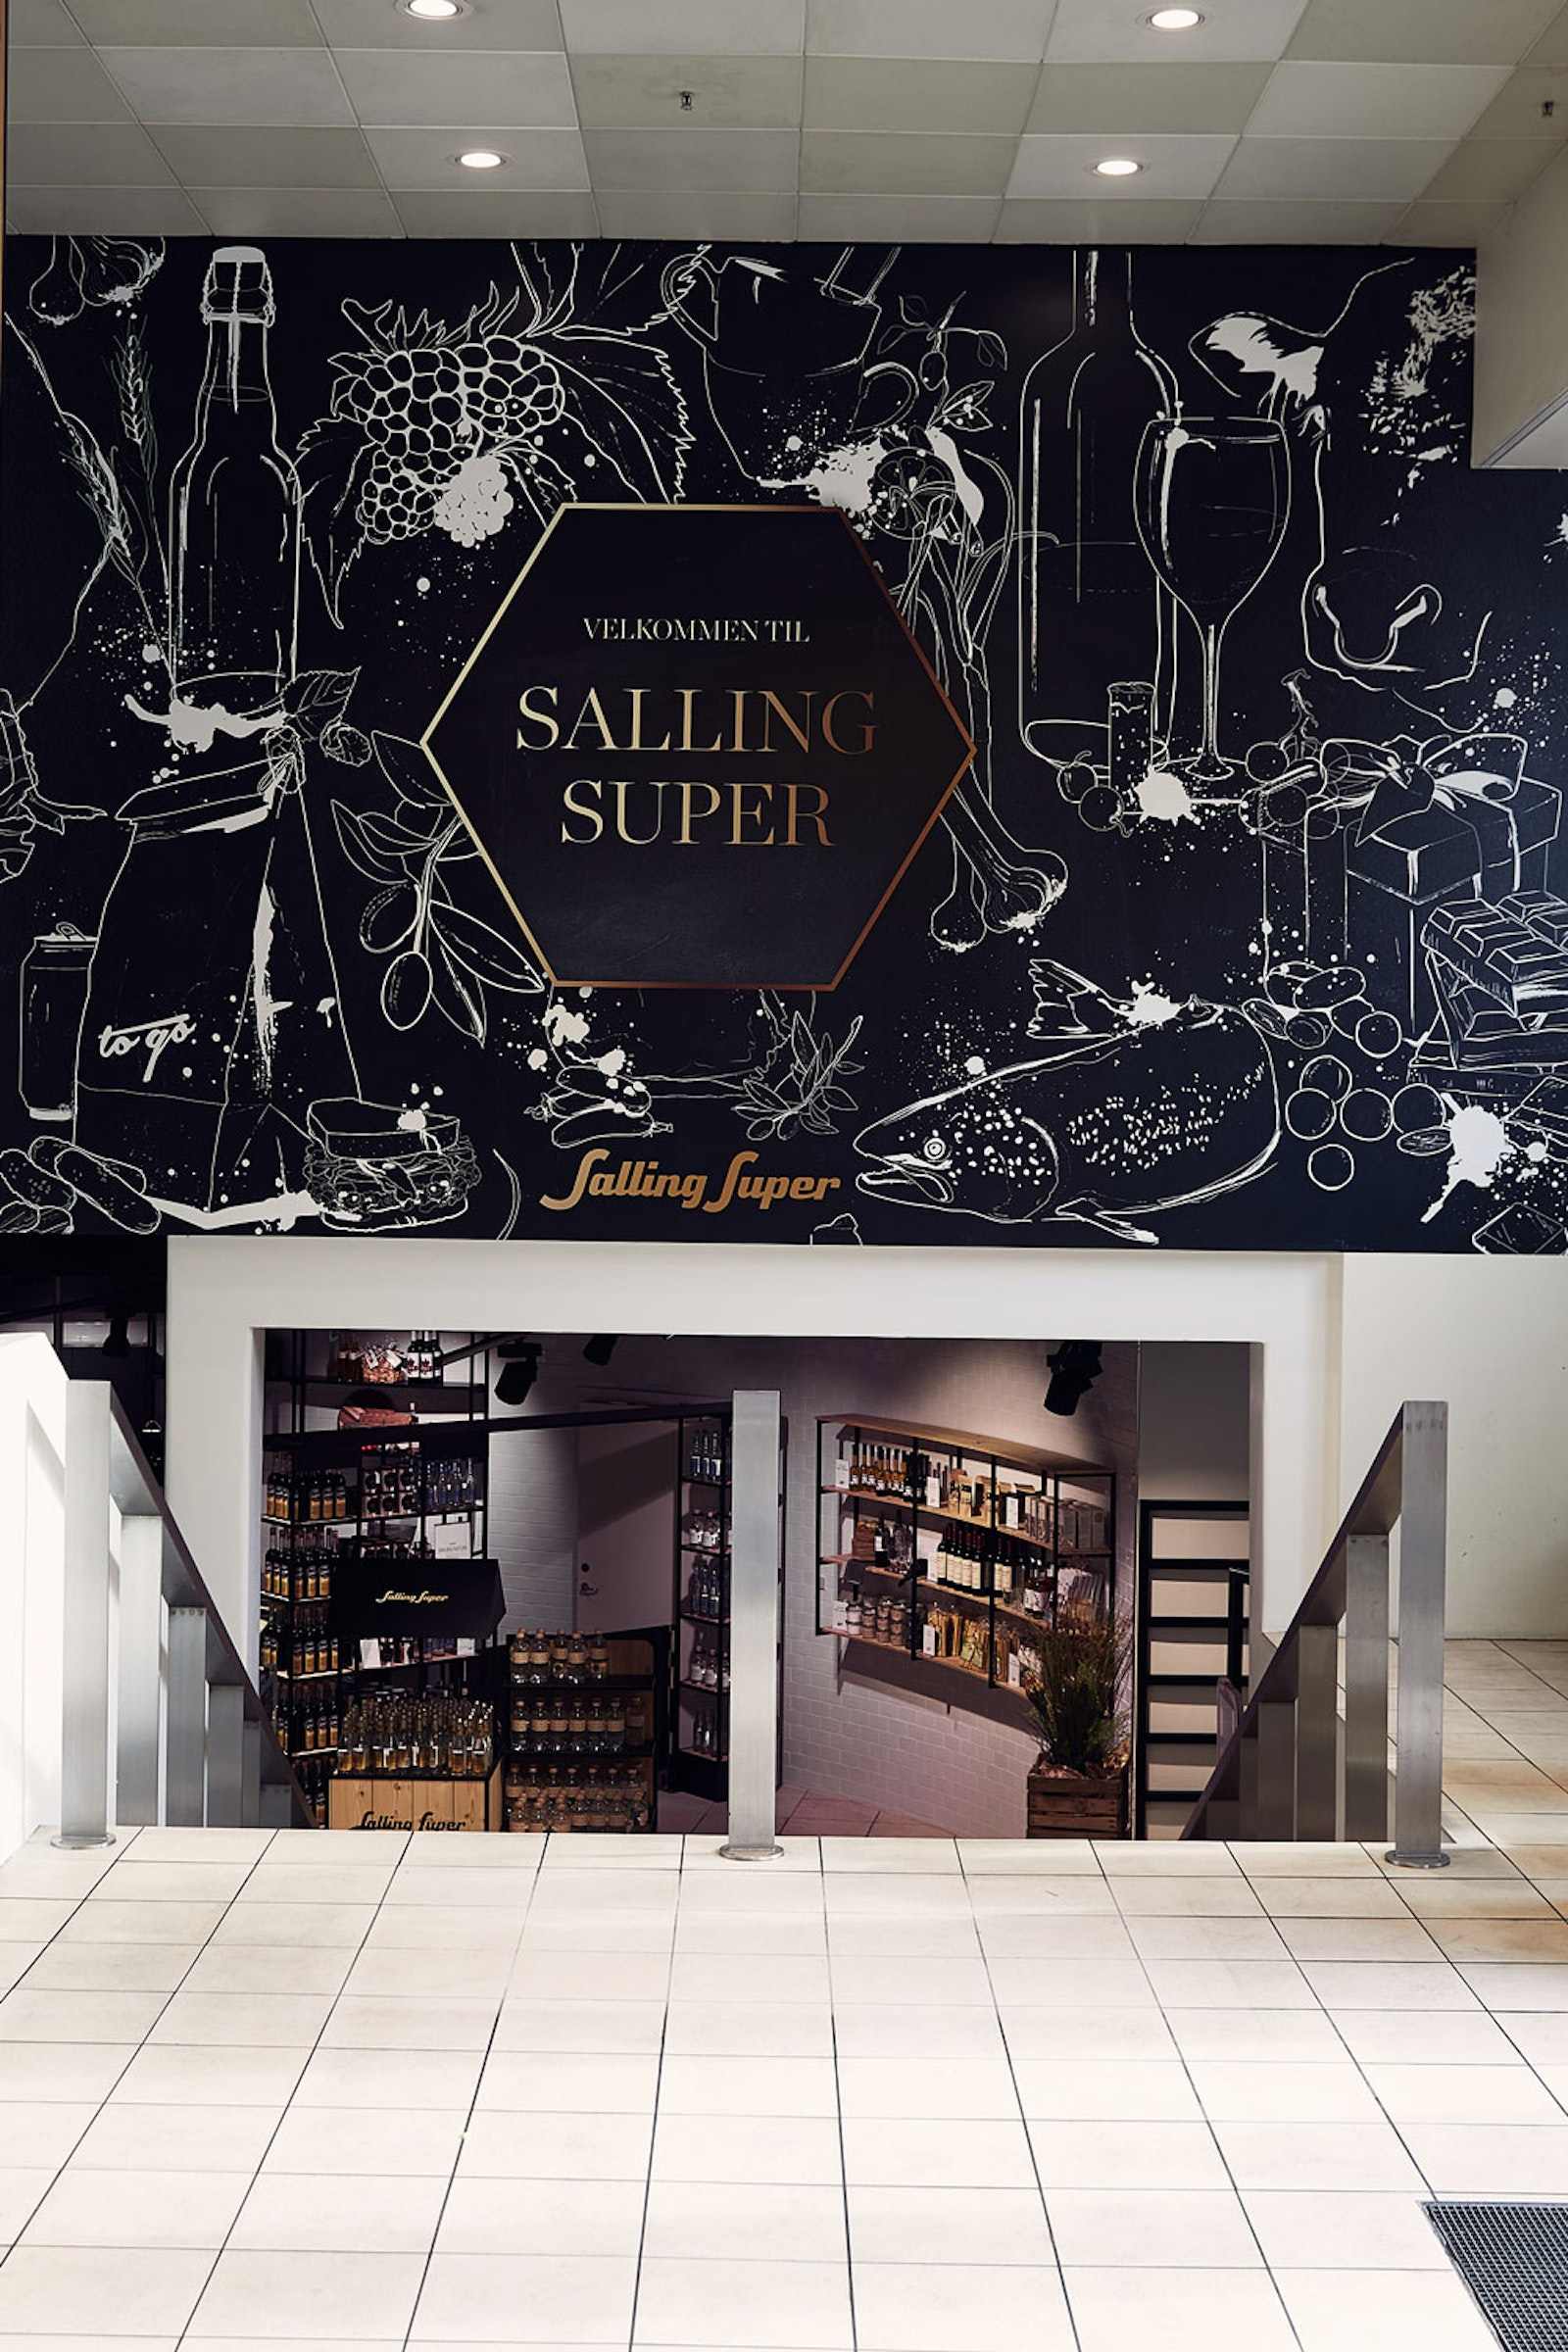 Bespoke murals at Salling Super by Ruth Crone Foster